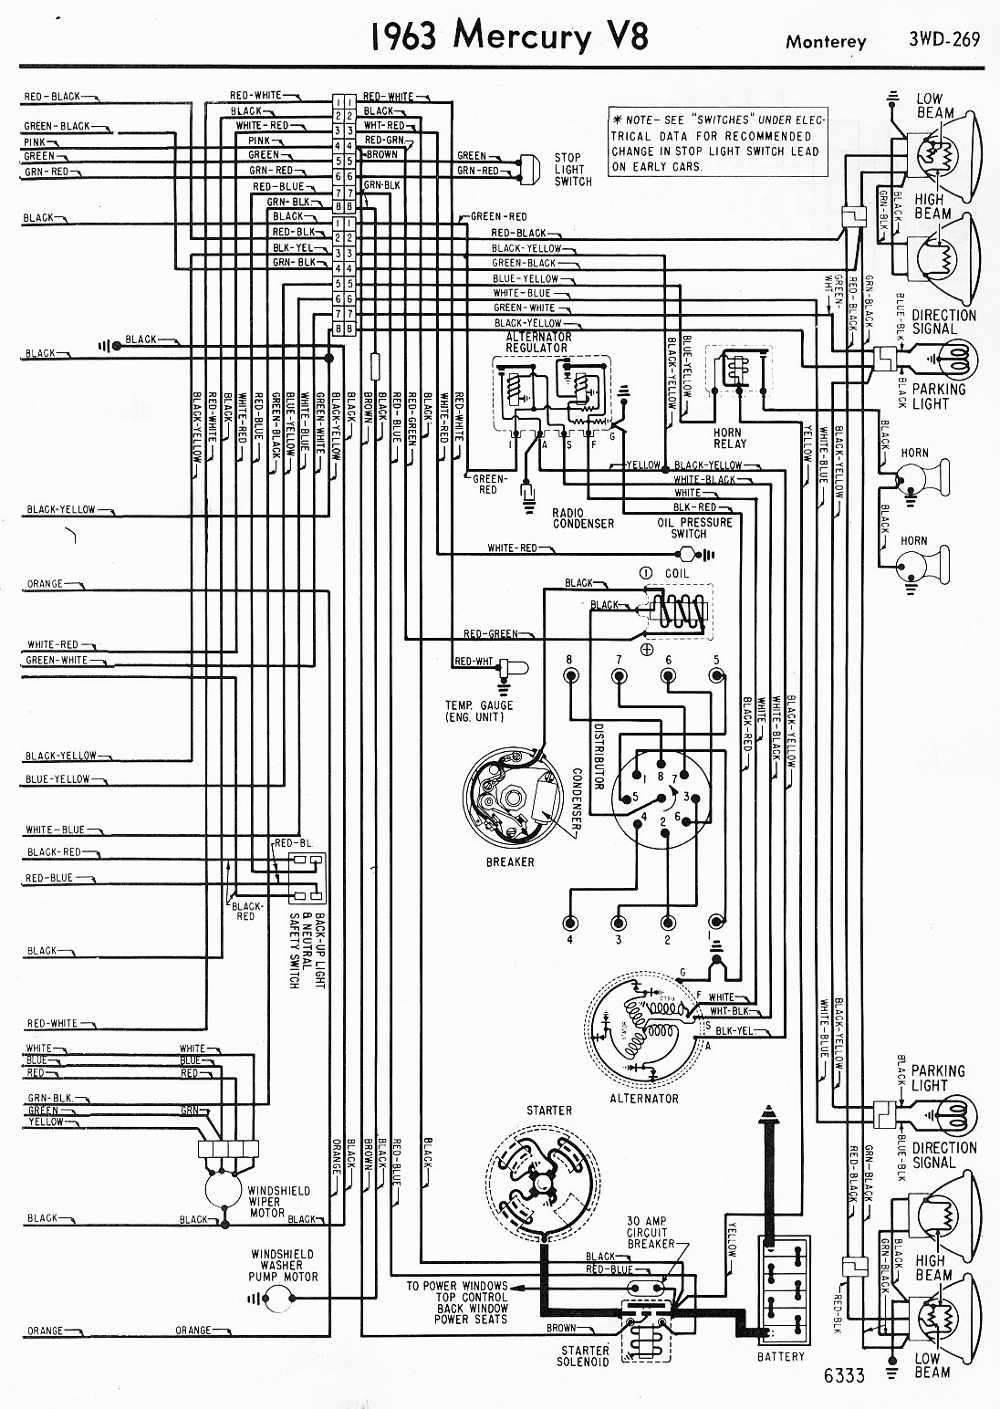 medium resolution of wiring diagrams of 1957 plymouth v8 all models wiring diagram for you wiring diagrams of 1959 mercury v8 all models